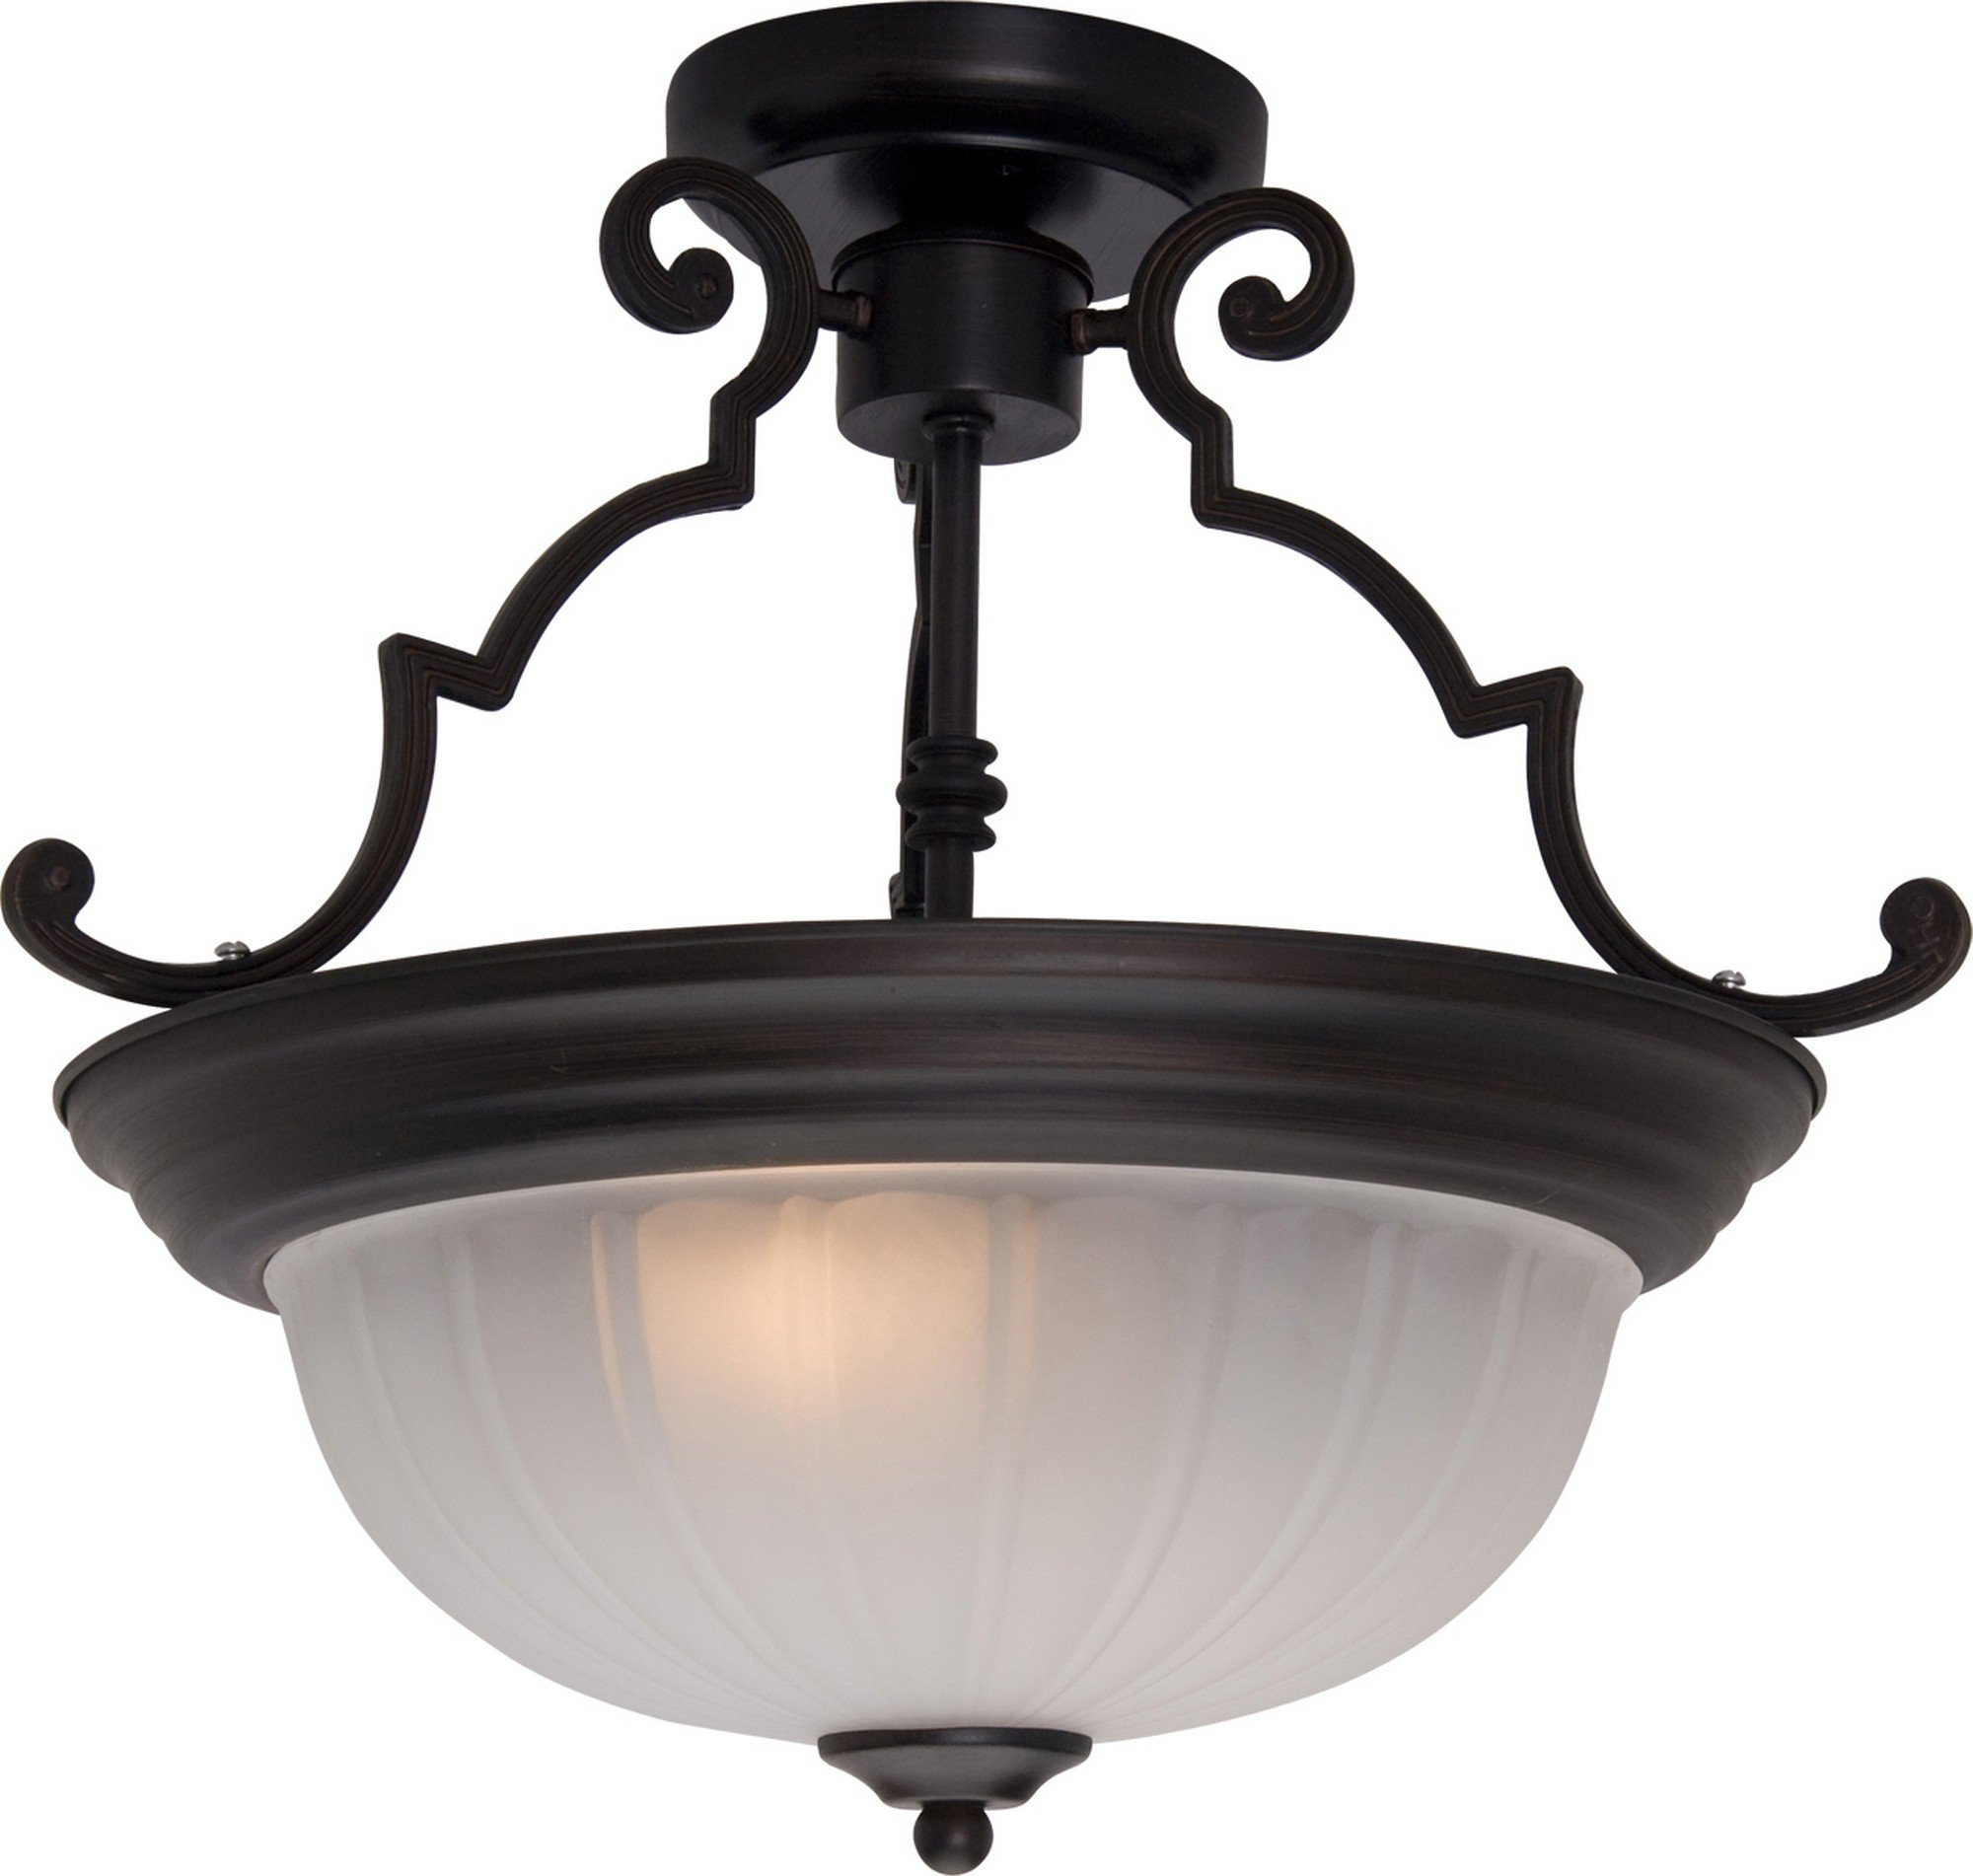 Maxim 5833FTOI Essentials 2-Light Semi-Flush Mount, Oil Rubbed Bronze Finish, Frosted Glass, MB Incandescent Incandescent Bulb , 40W Max., Dry Safety Rating, Standard Dimmable, Linen/Silver Leaf Fa Shade Material, 800 Rated Lumens